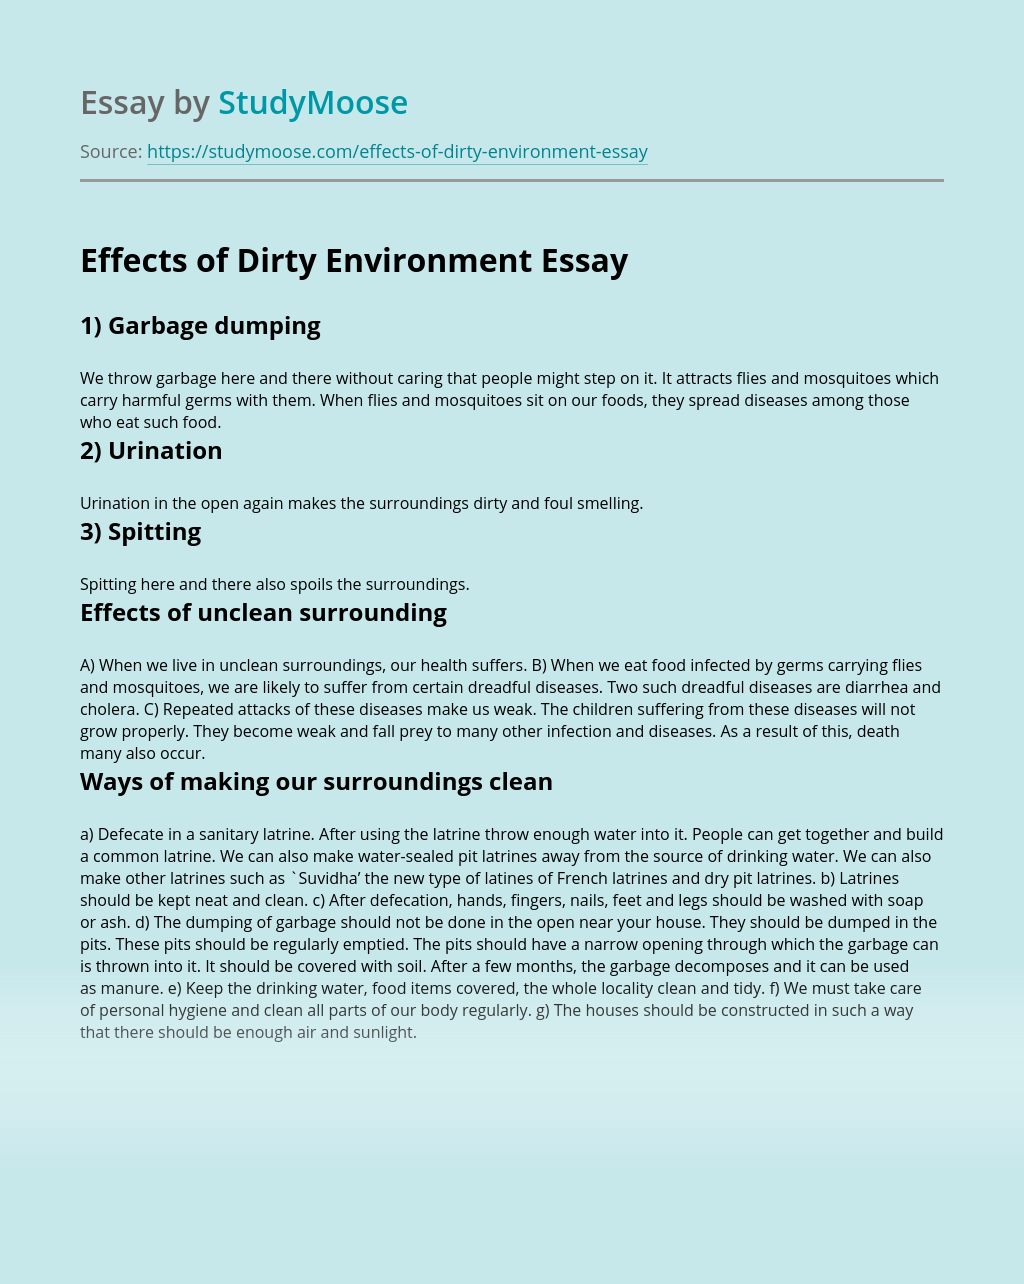 Effects of Dirty Environment